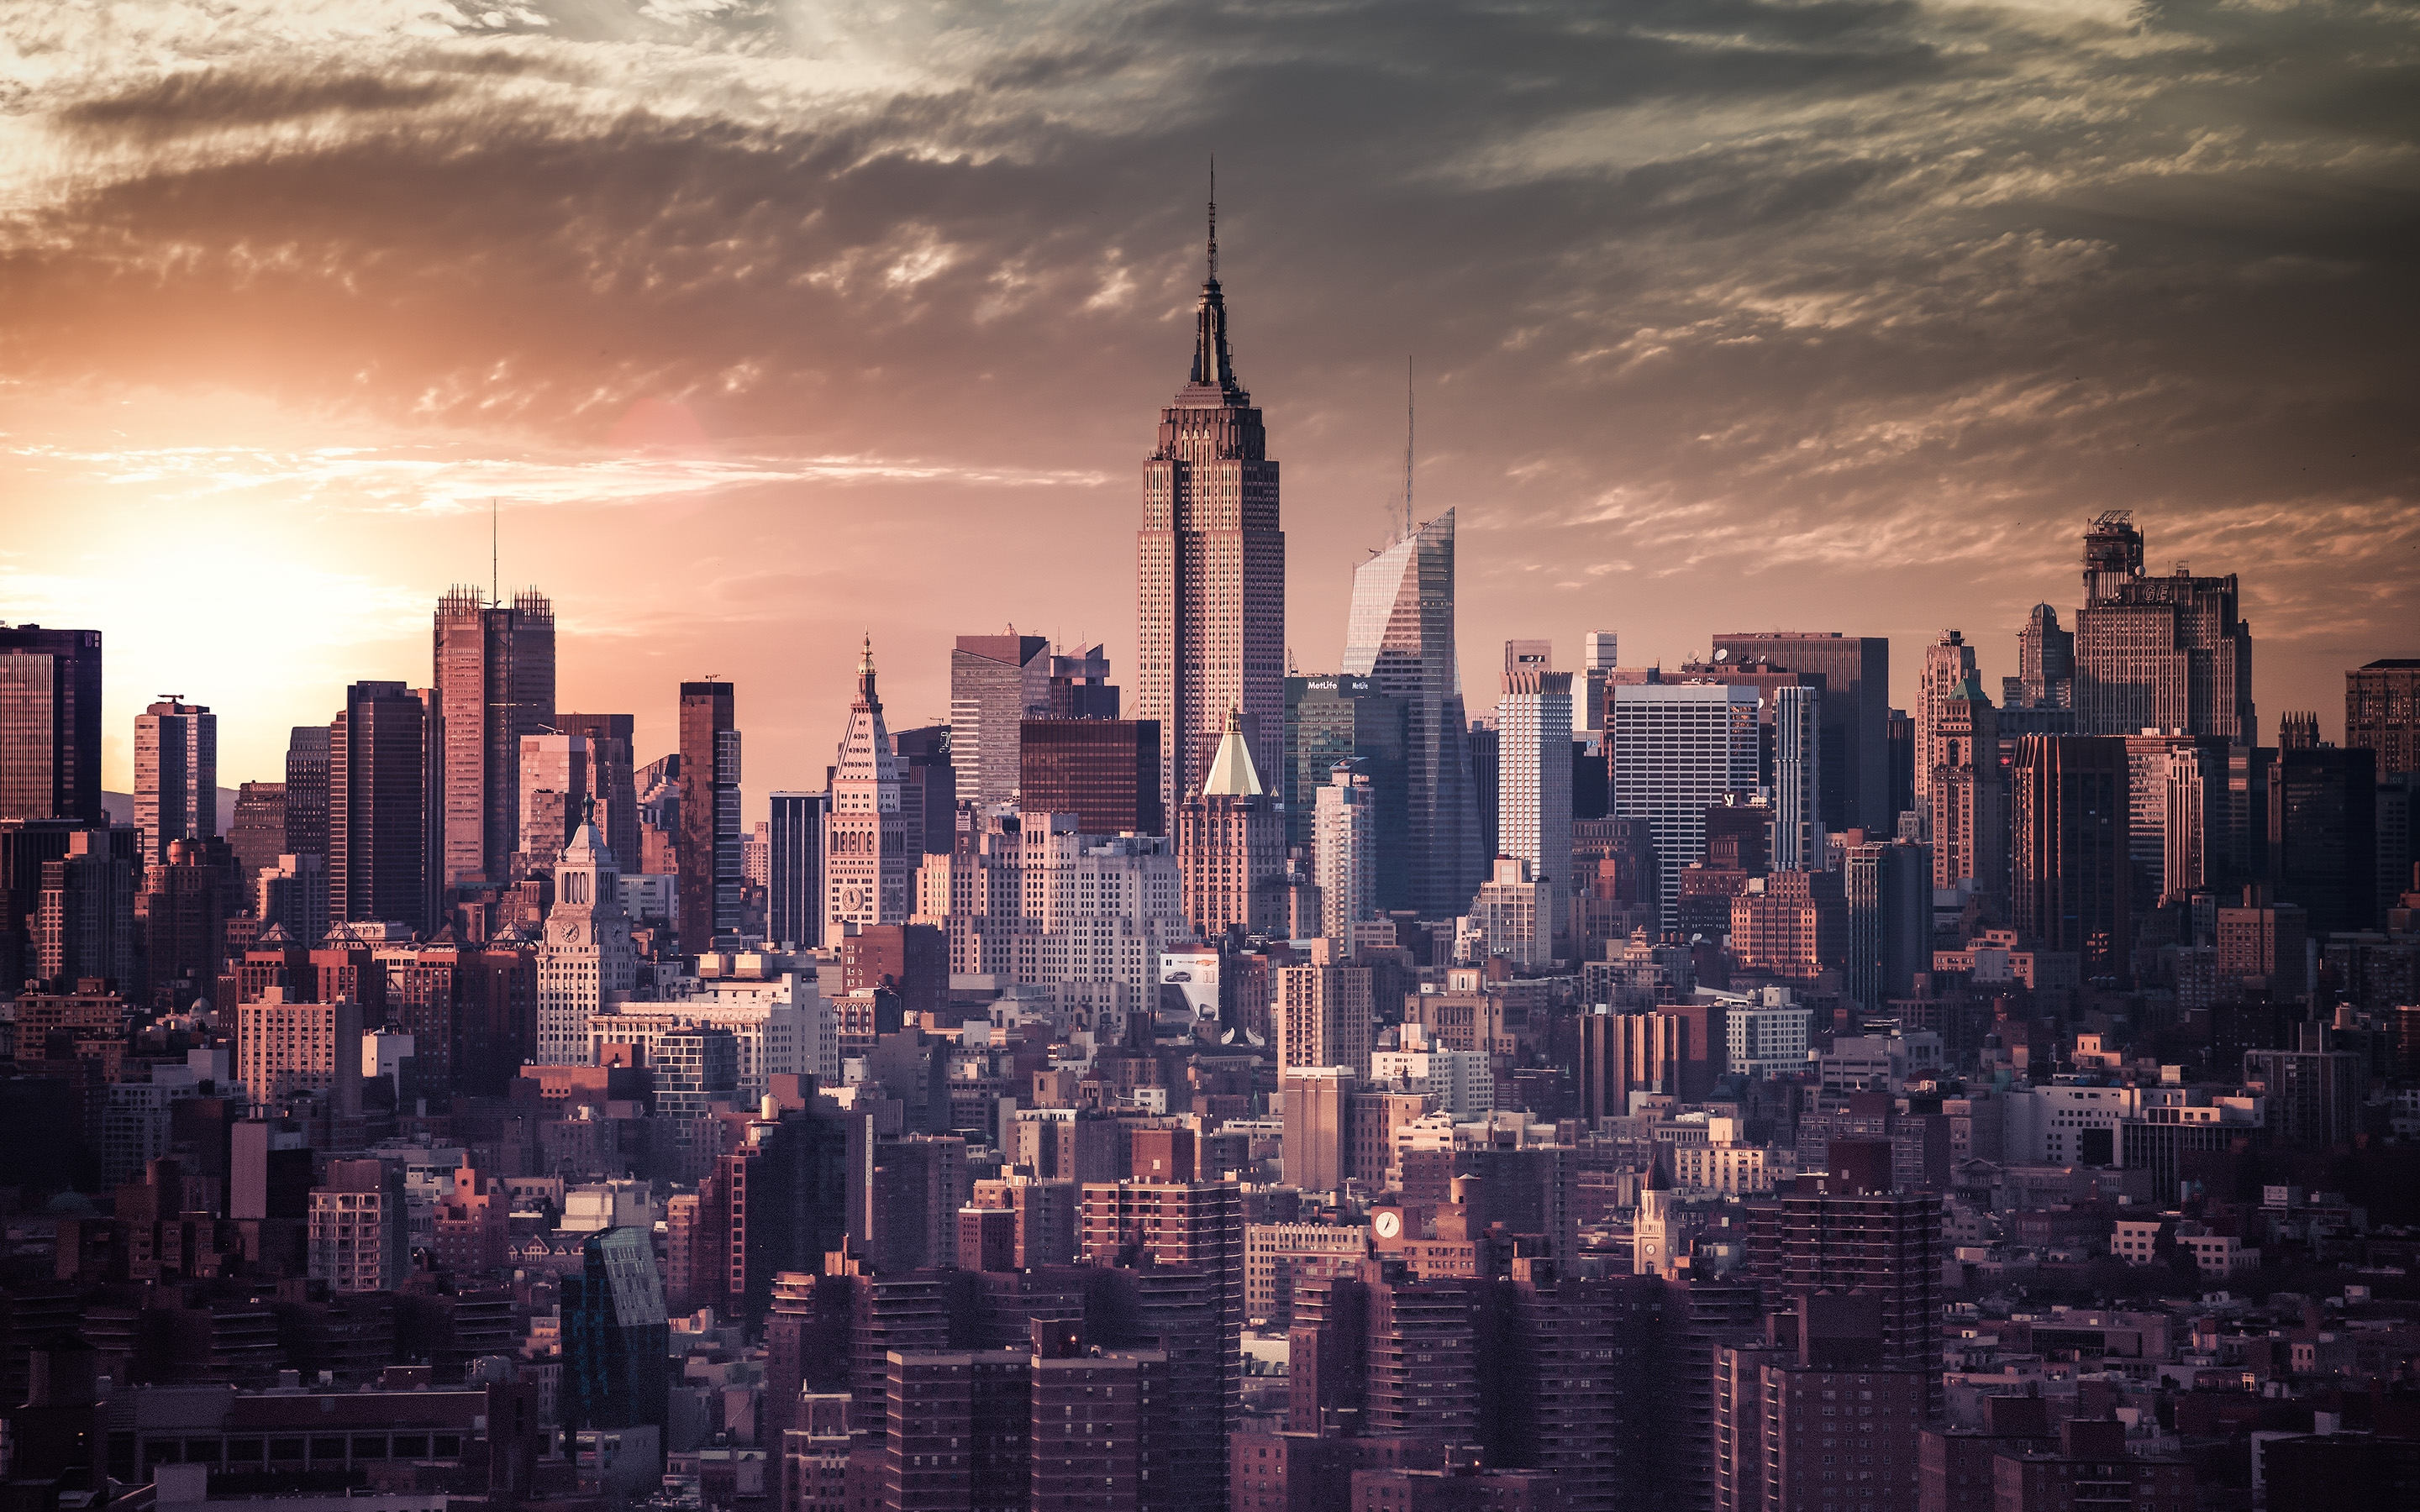 Vintage New York City Skyline Wallpaper   HD Background 2880x1800